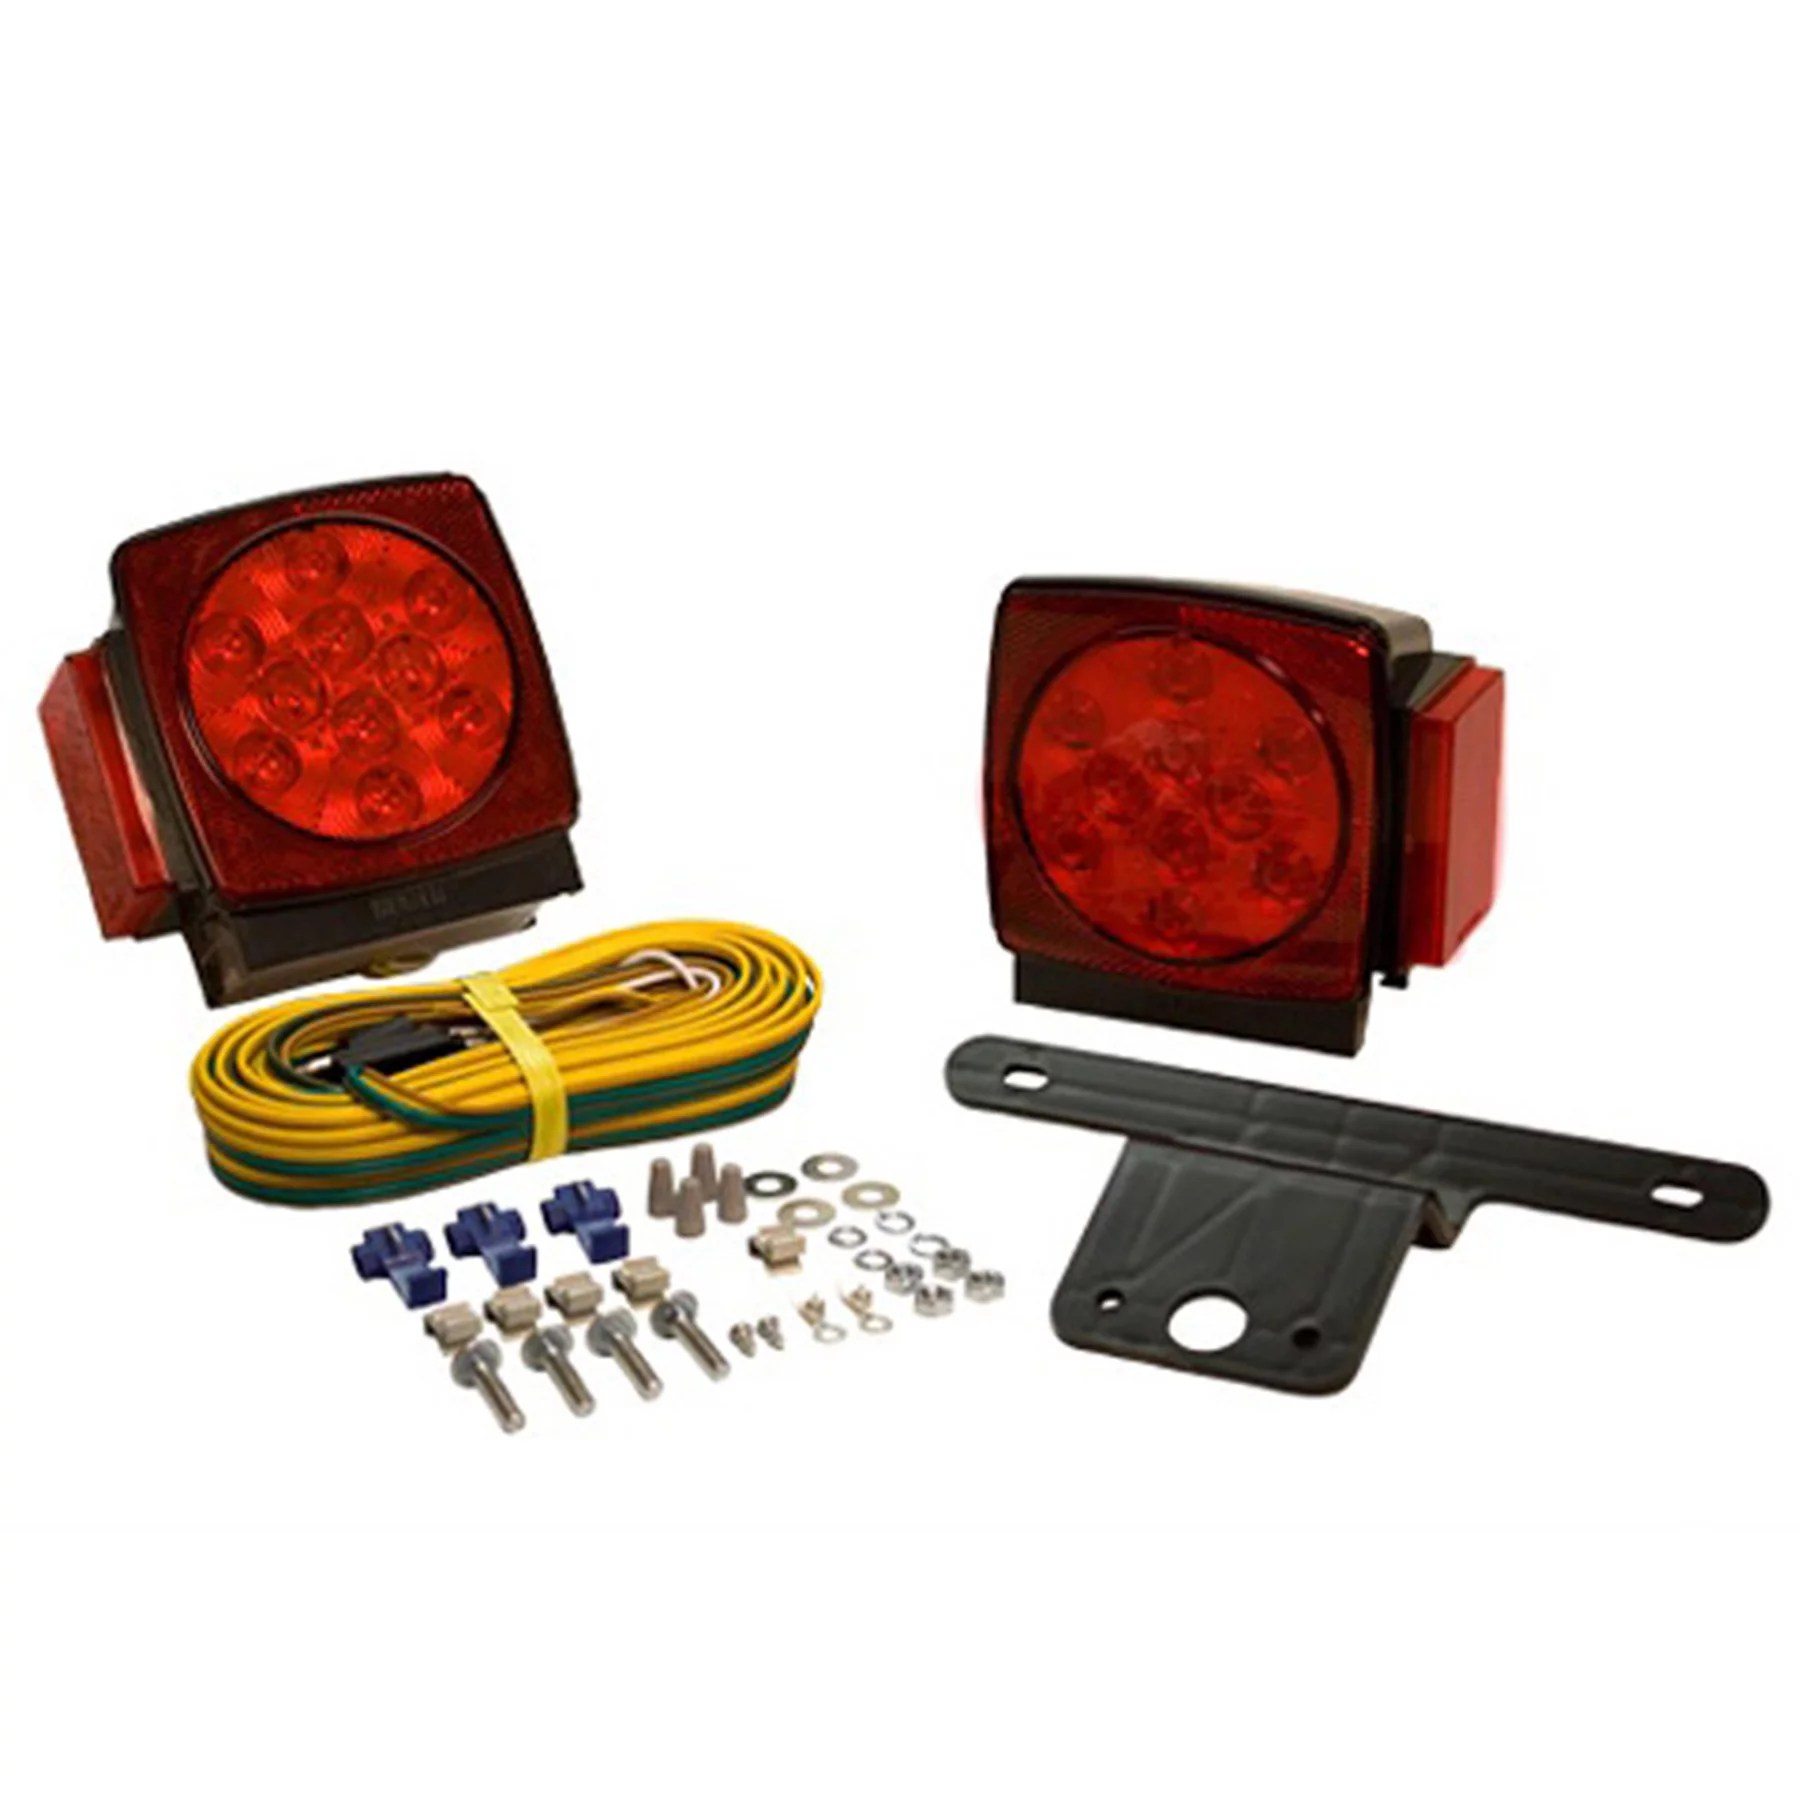 hight resolution of blazer c7423 submersible led trailer light kit for trailers under 80 wide 1 pair walmart com